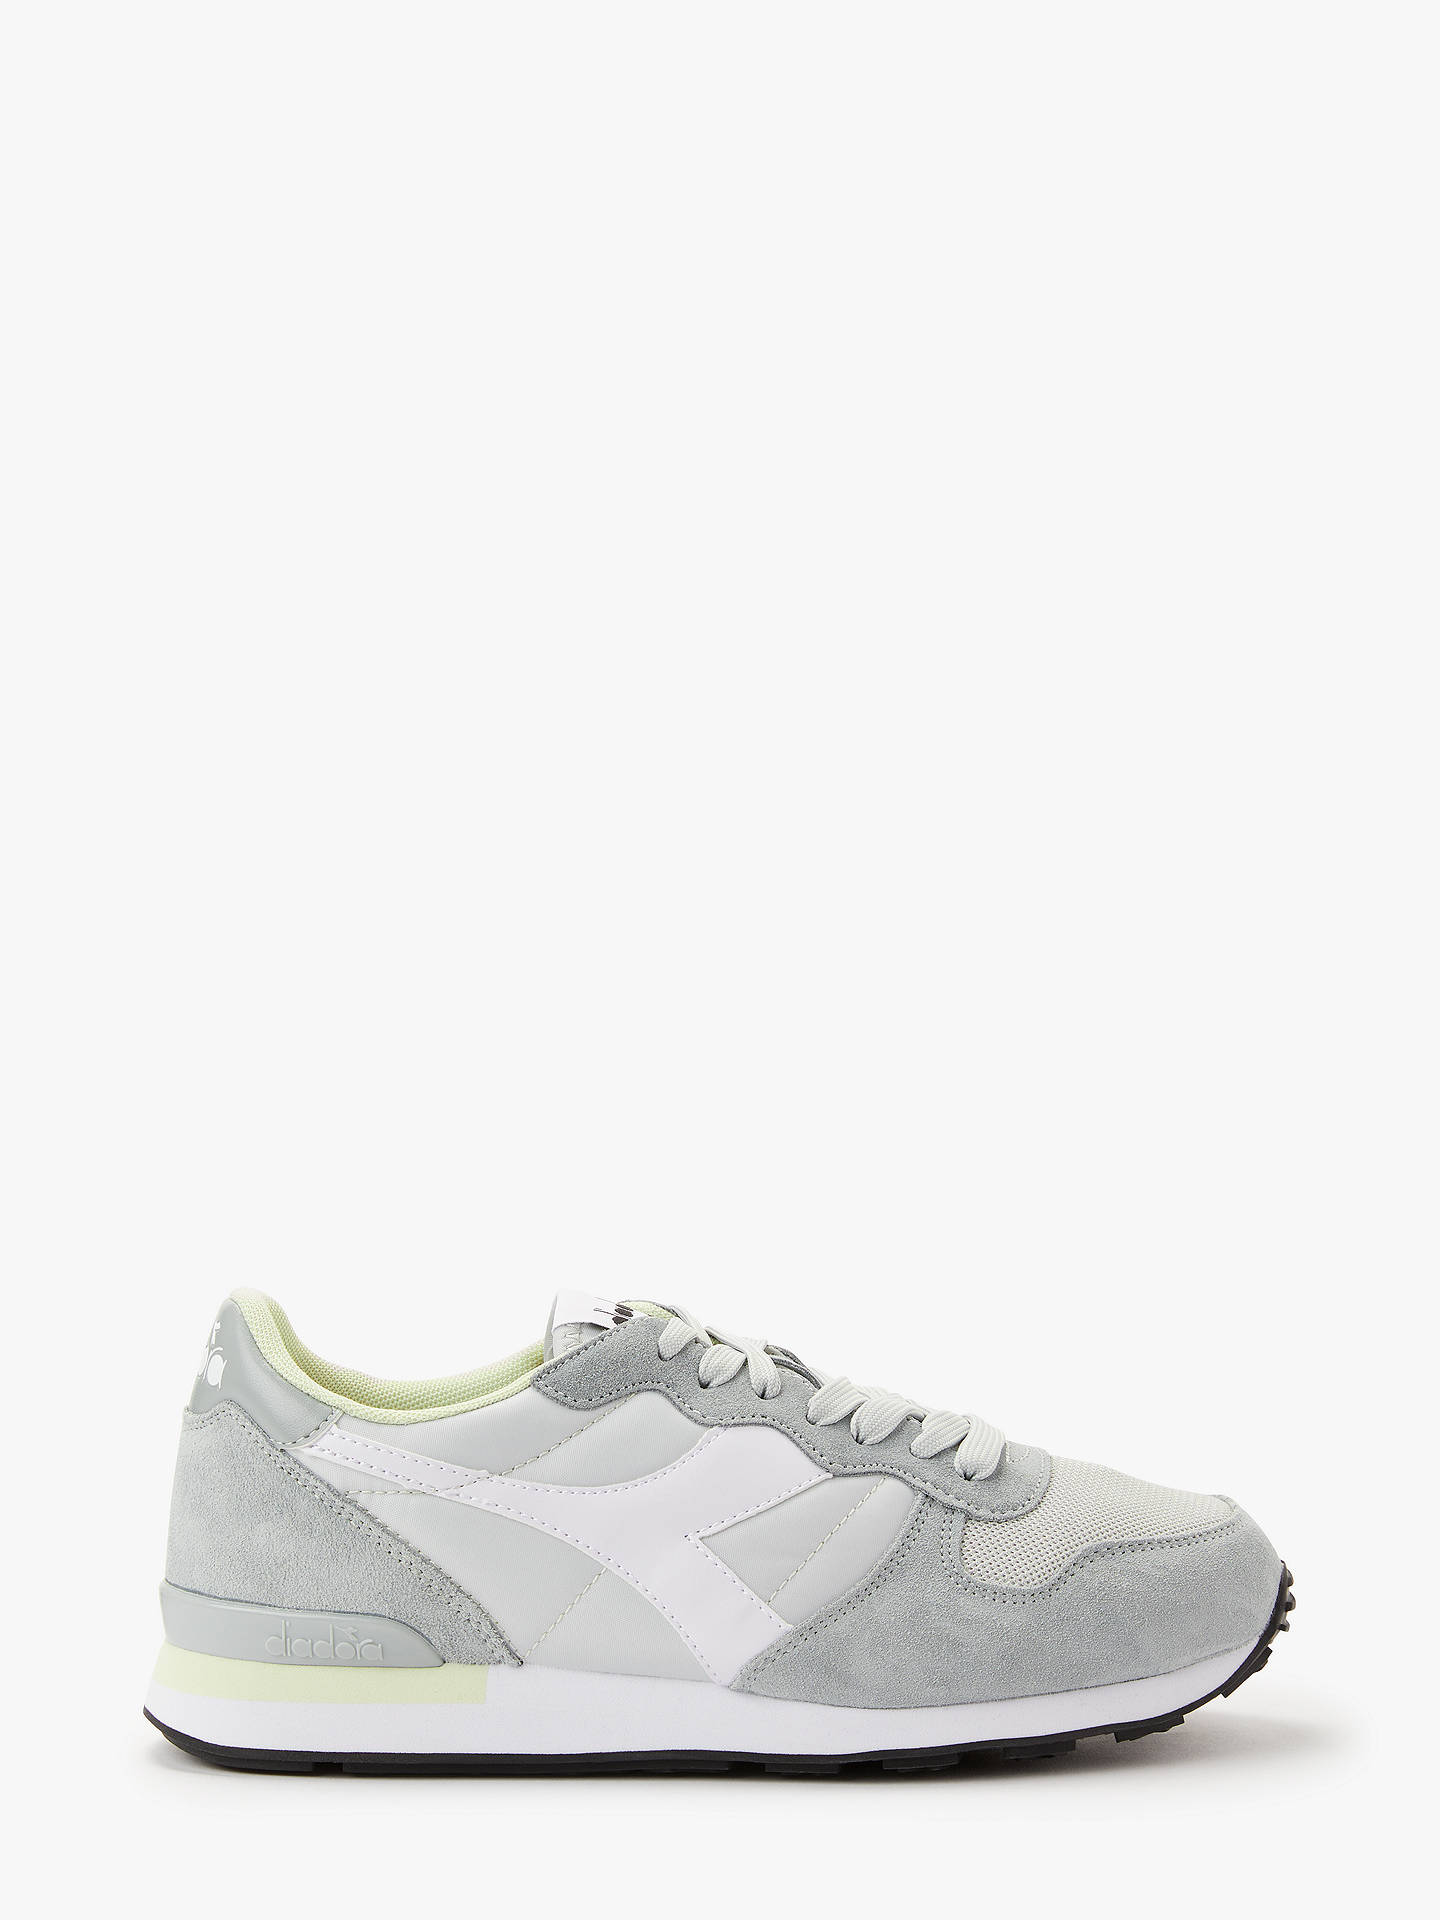 719da39b64 Diadora Camaro Lace Up Trainers, High Rise/Limestone at John Lewis ...